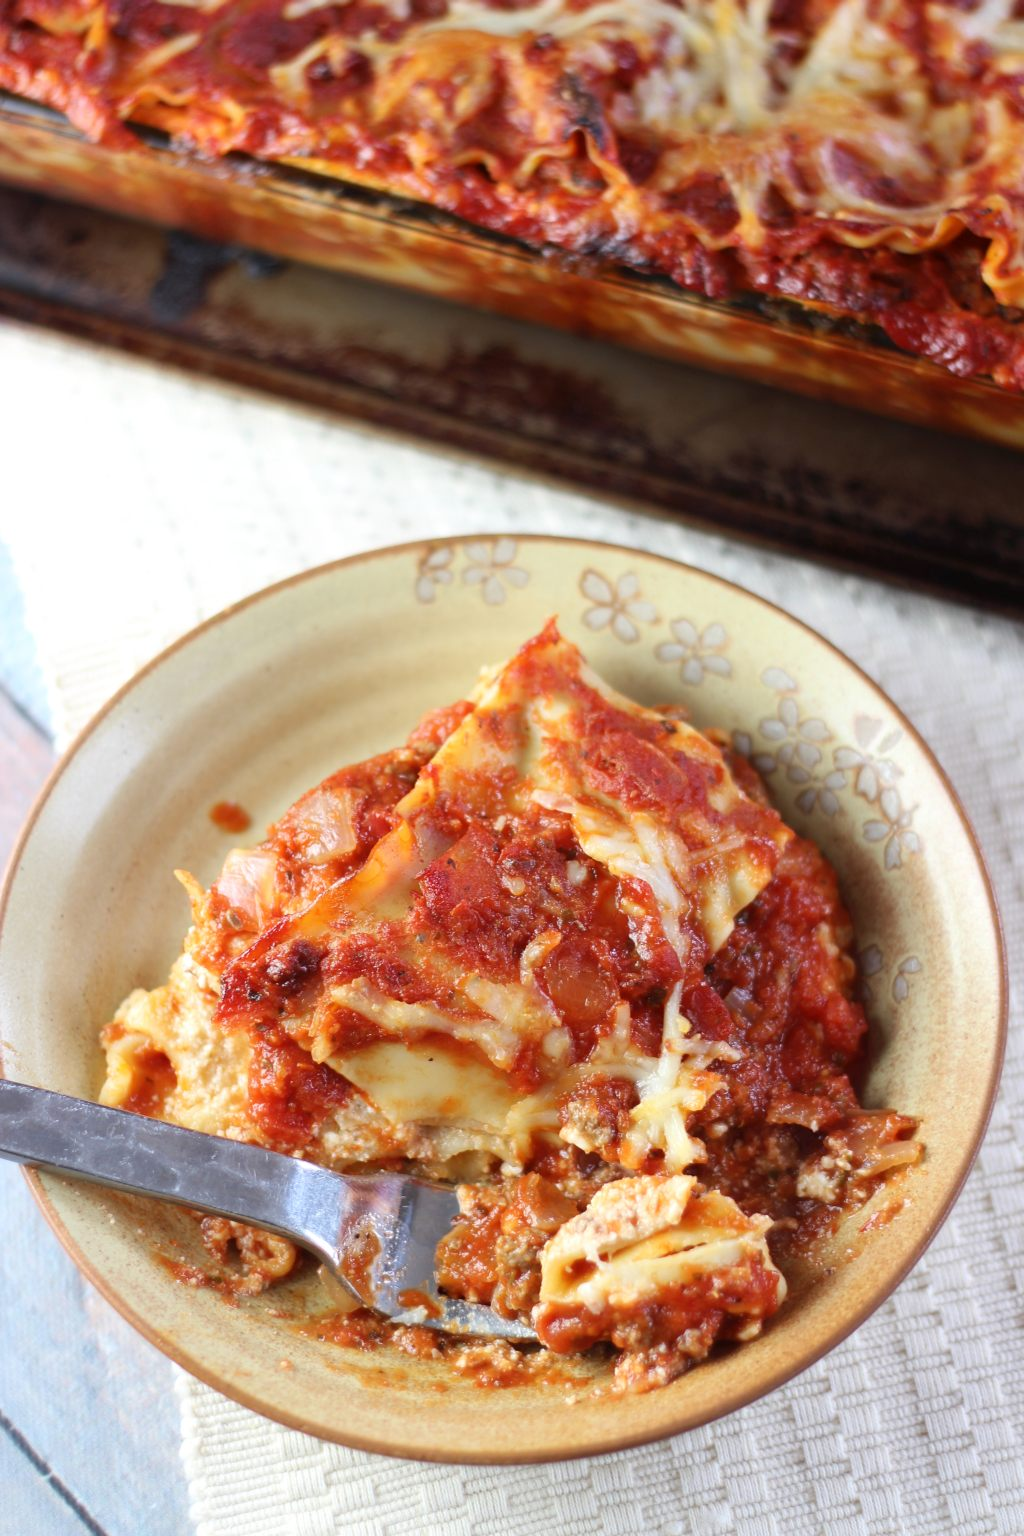 Monster World Garten Ina Garten Lasagna Recipe